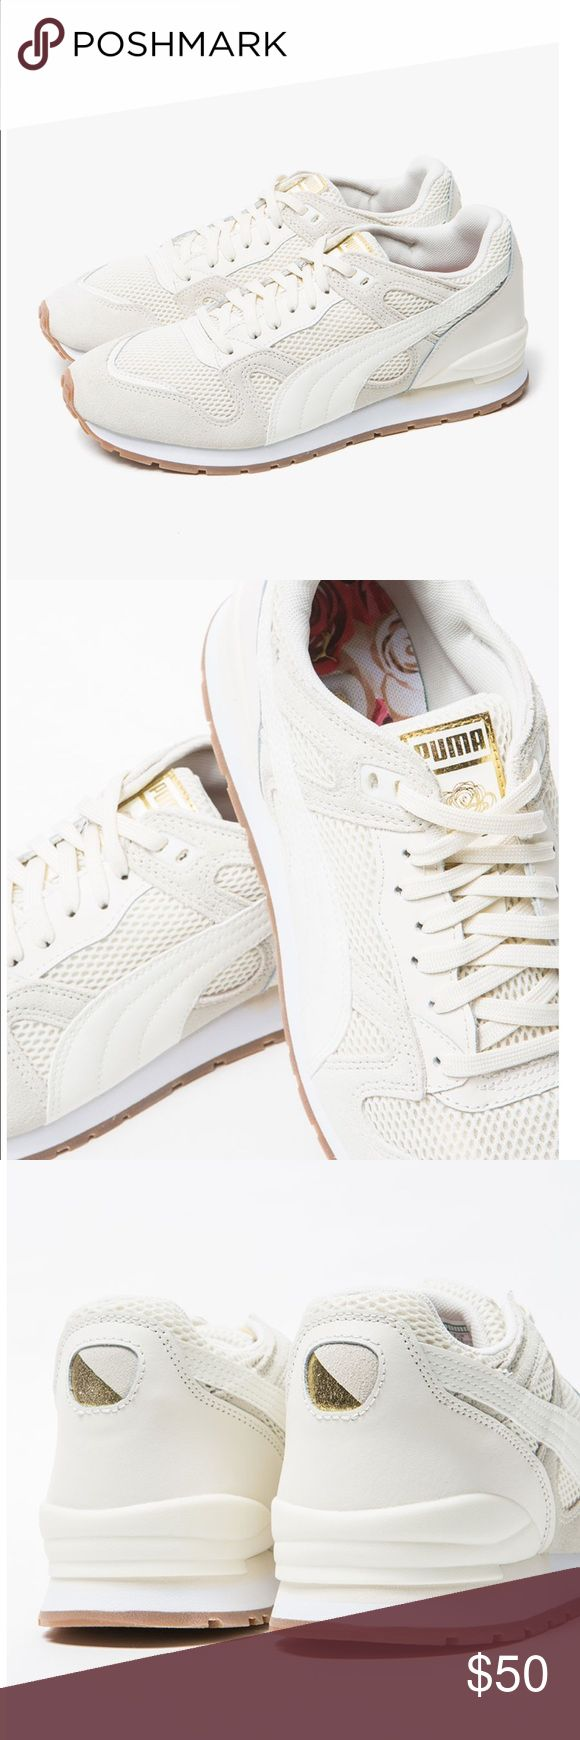 Duplex OG x CAREAUX Pumas Off-white Sz 8 I bought these Pumas off of Need Supply for my nursing school uniform. They were listed as whisper white, but it turns out they were more of an off white and didn't adhere to the dress code. They were only worn once, but there is some faint pink discoloration from where the dye from my scrubs rubbed off. I've included pics where there is discoloration, but it's hardly noticeable when worn. Listed as Eur 38.5, but I'm more of an 8 and they fit me…